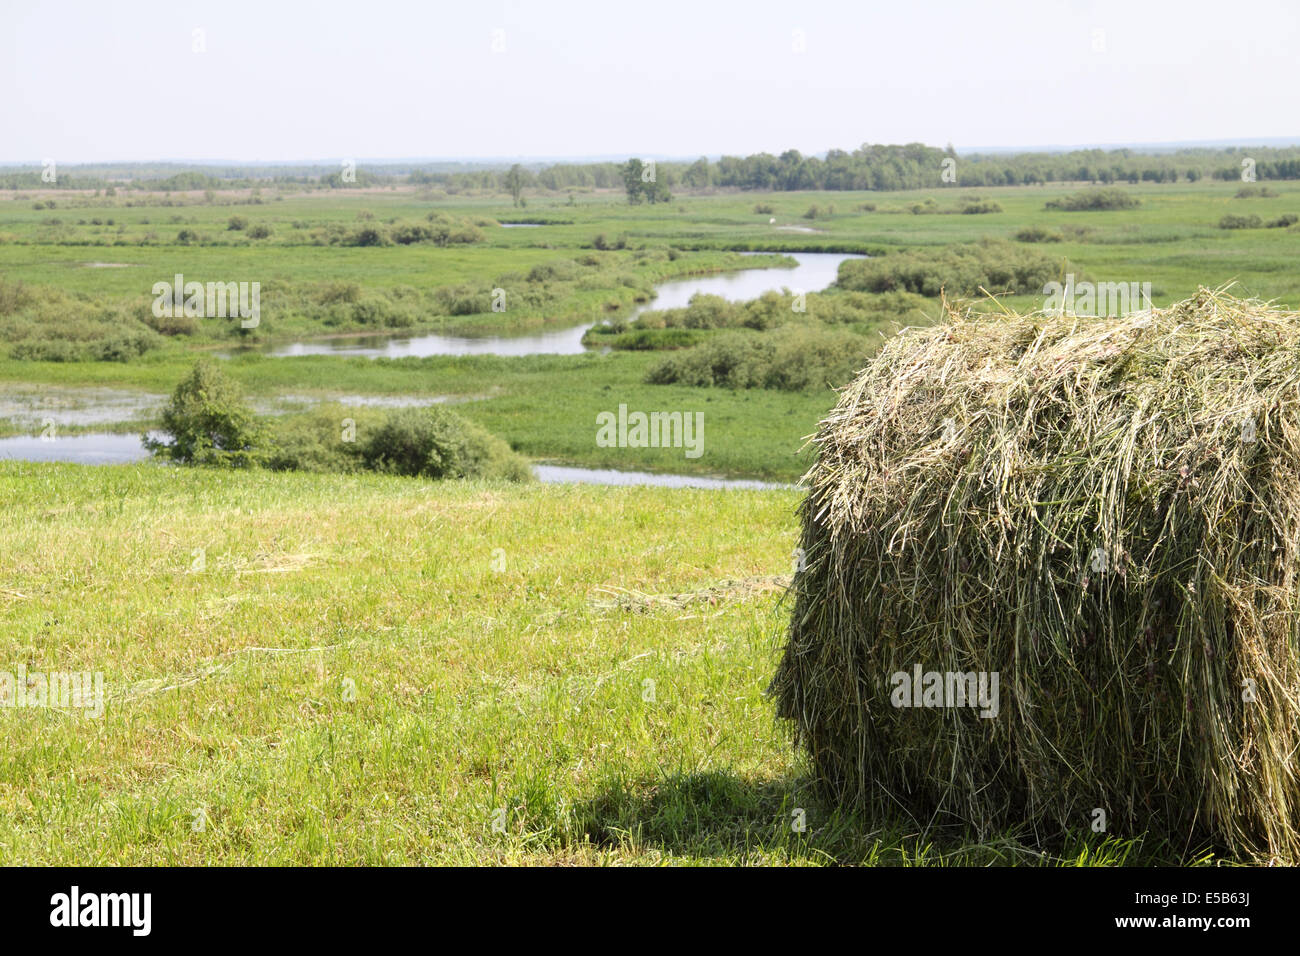 Polish agricultural scene hayfield at edge of marshes - Stock Image